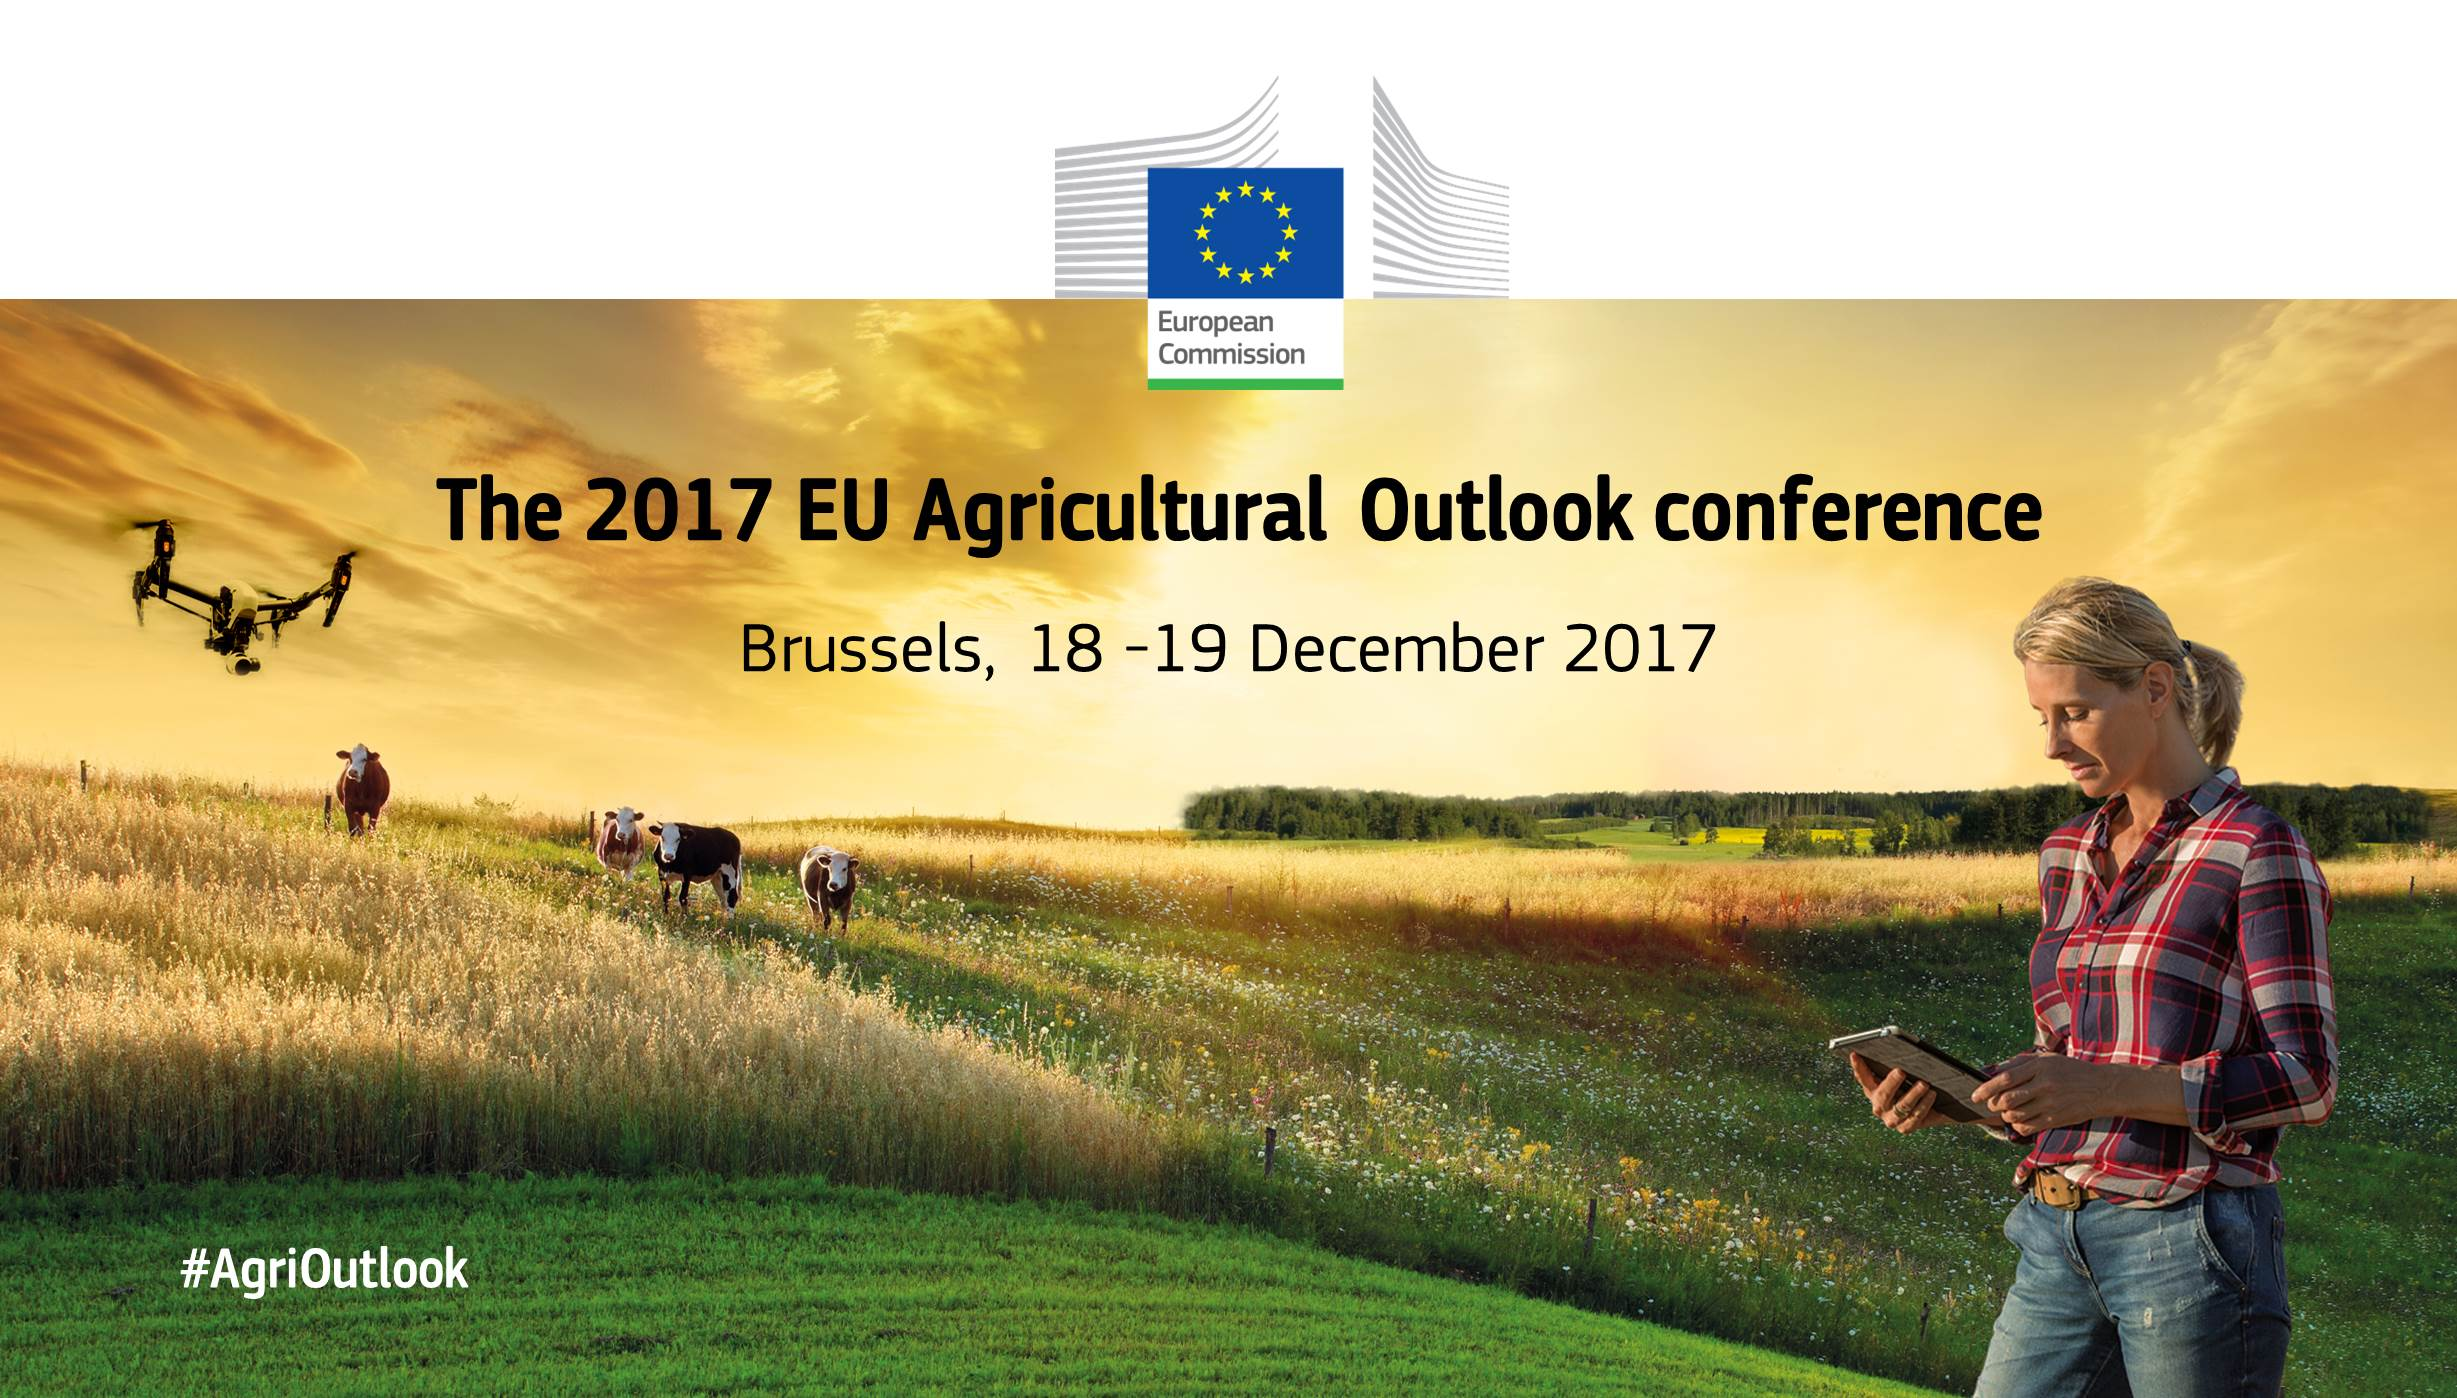 Outlook Conference Brussels 18-19 December 2017